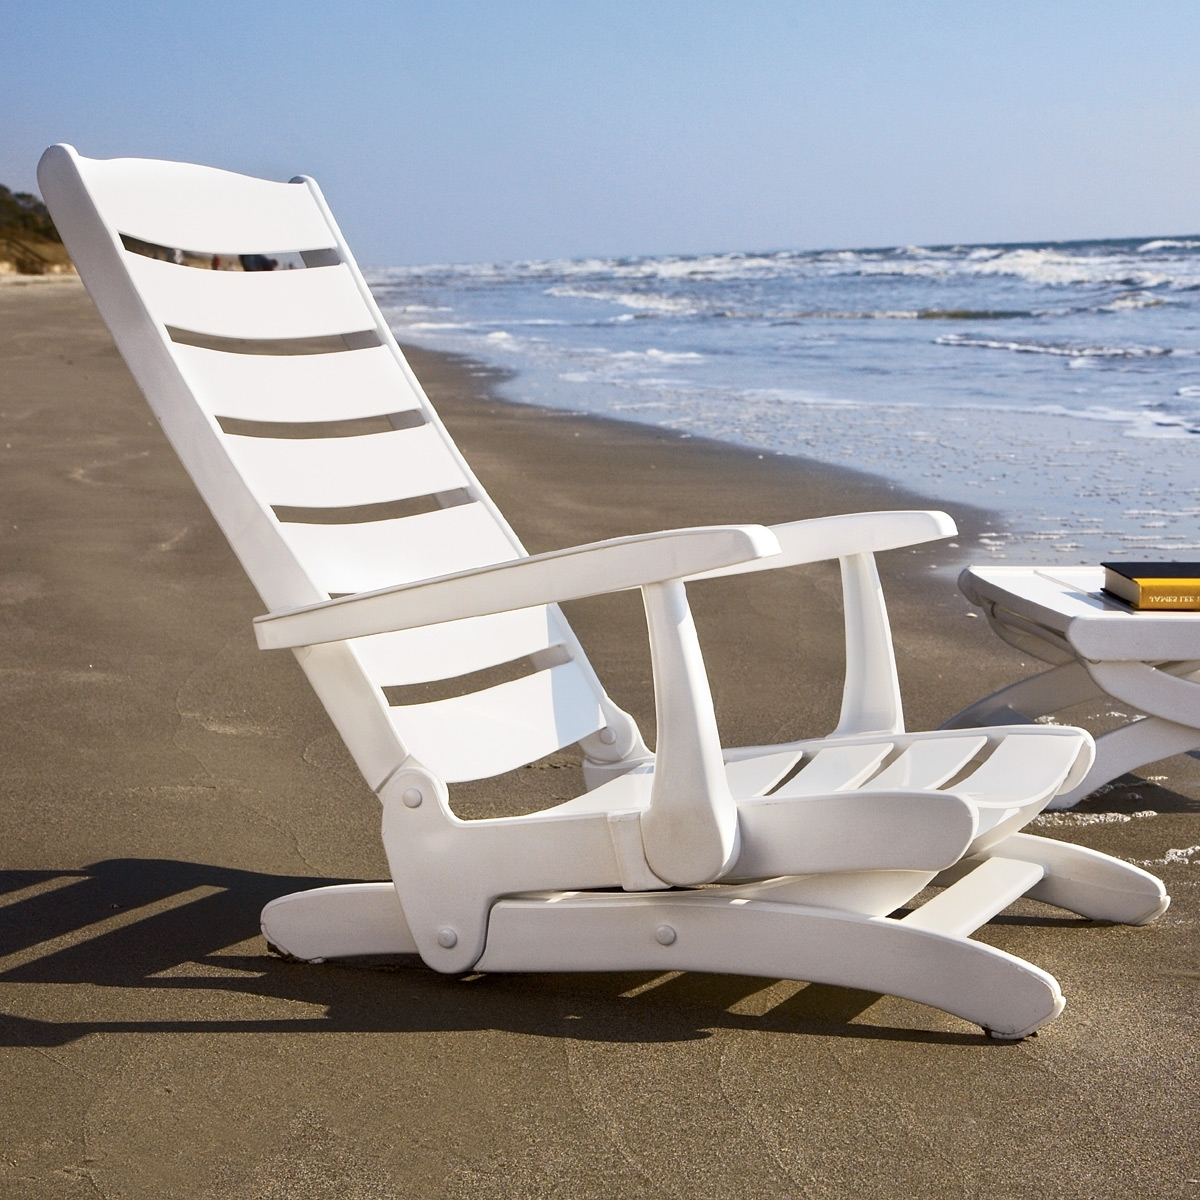 Kettler Chaise Lounge Chairs With Well Liked Kettler High Back Outdoor Lawn Chair (16 Position) – From Sportys (Gallery 4 of 15)